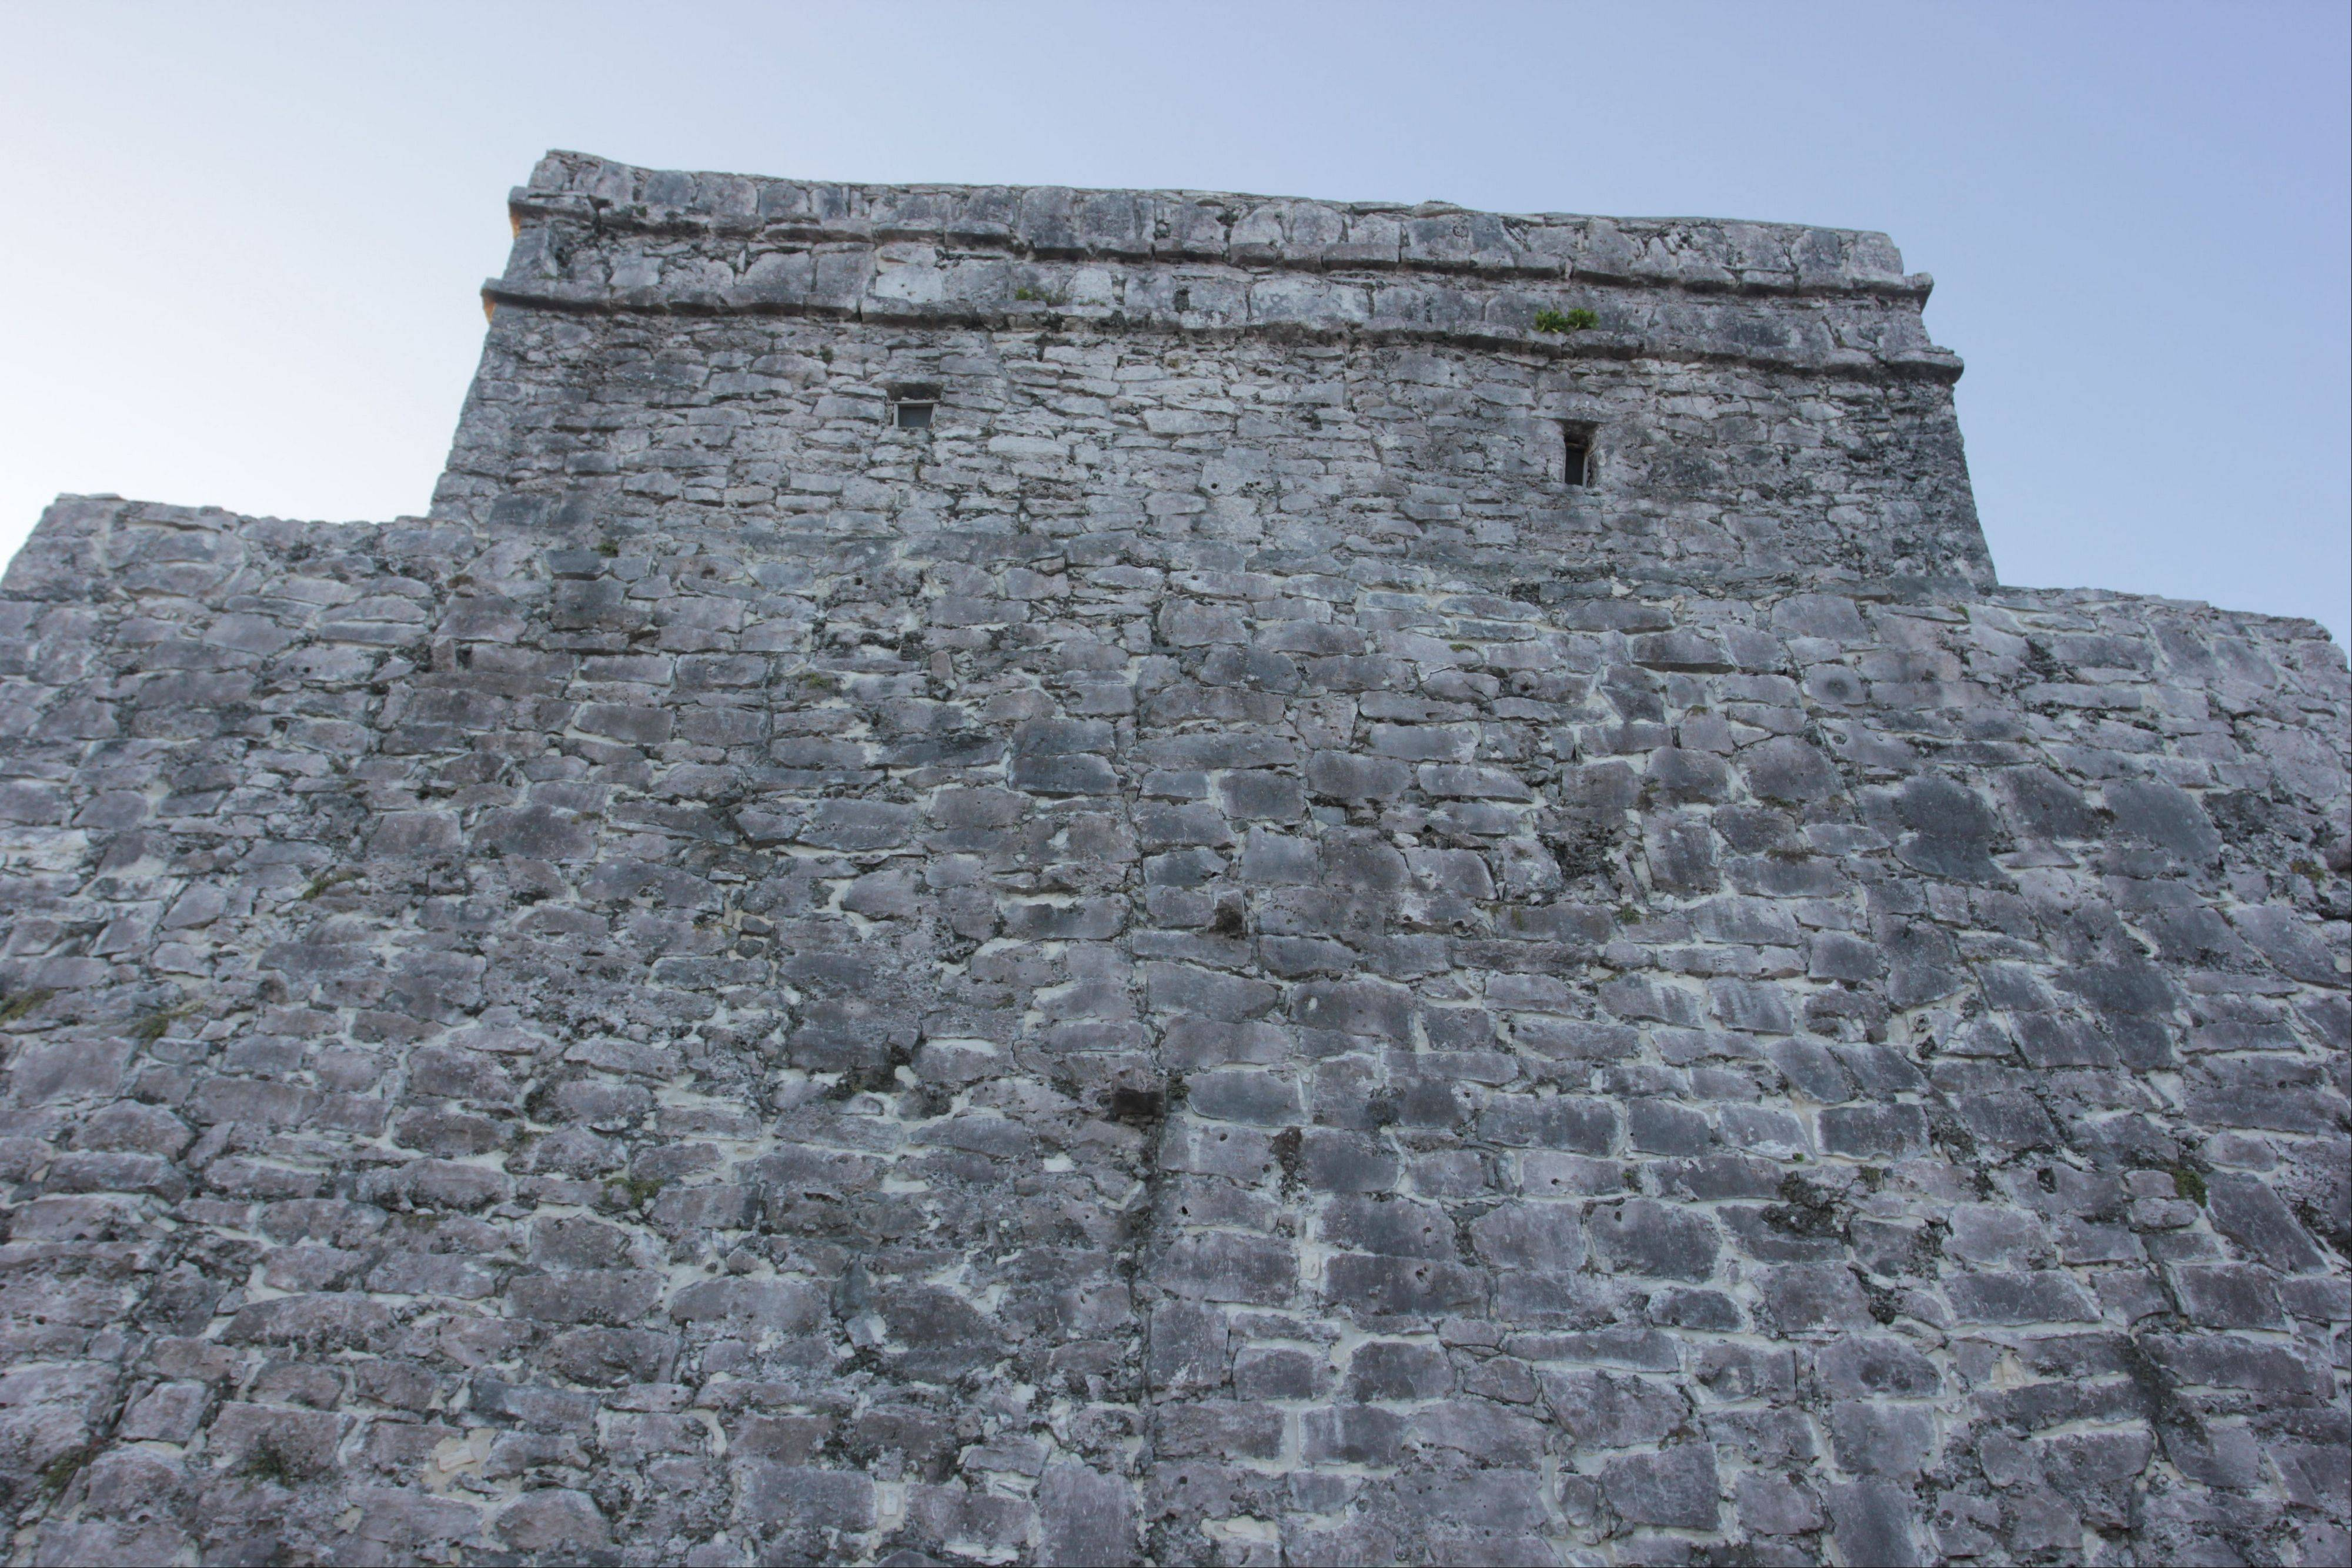 Tulum may be best-known for its ancient Mayan ruins, which attract a steady stream of day-trippers, cruise passengers and tour buses.